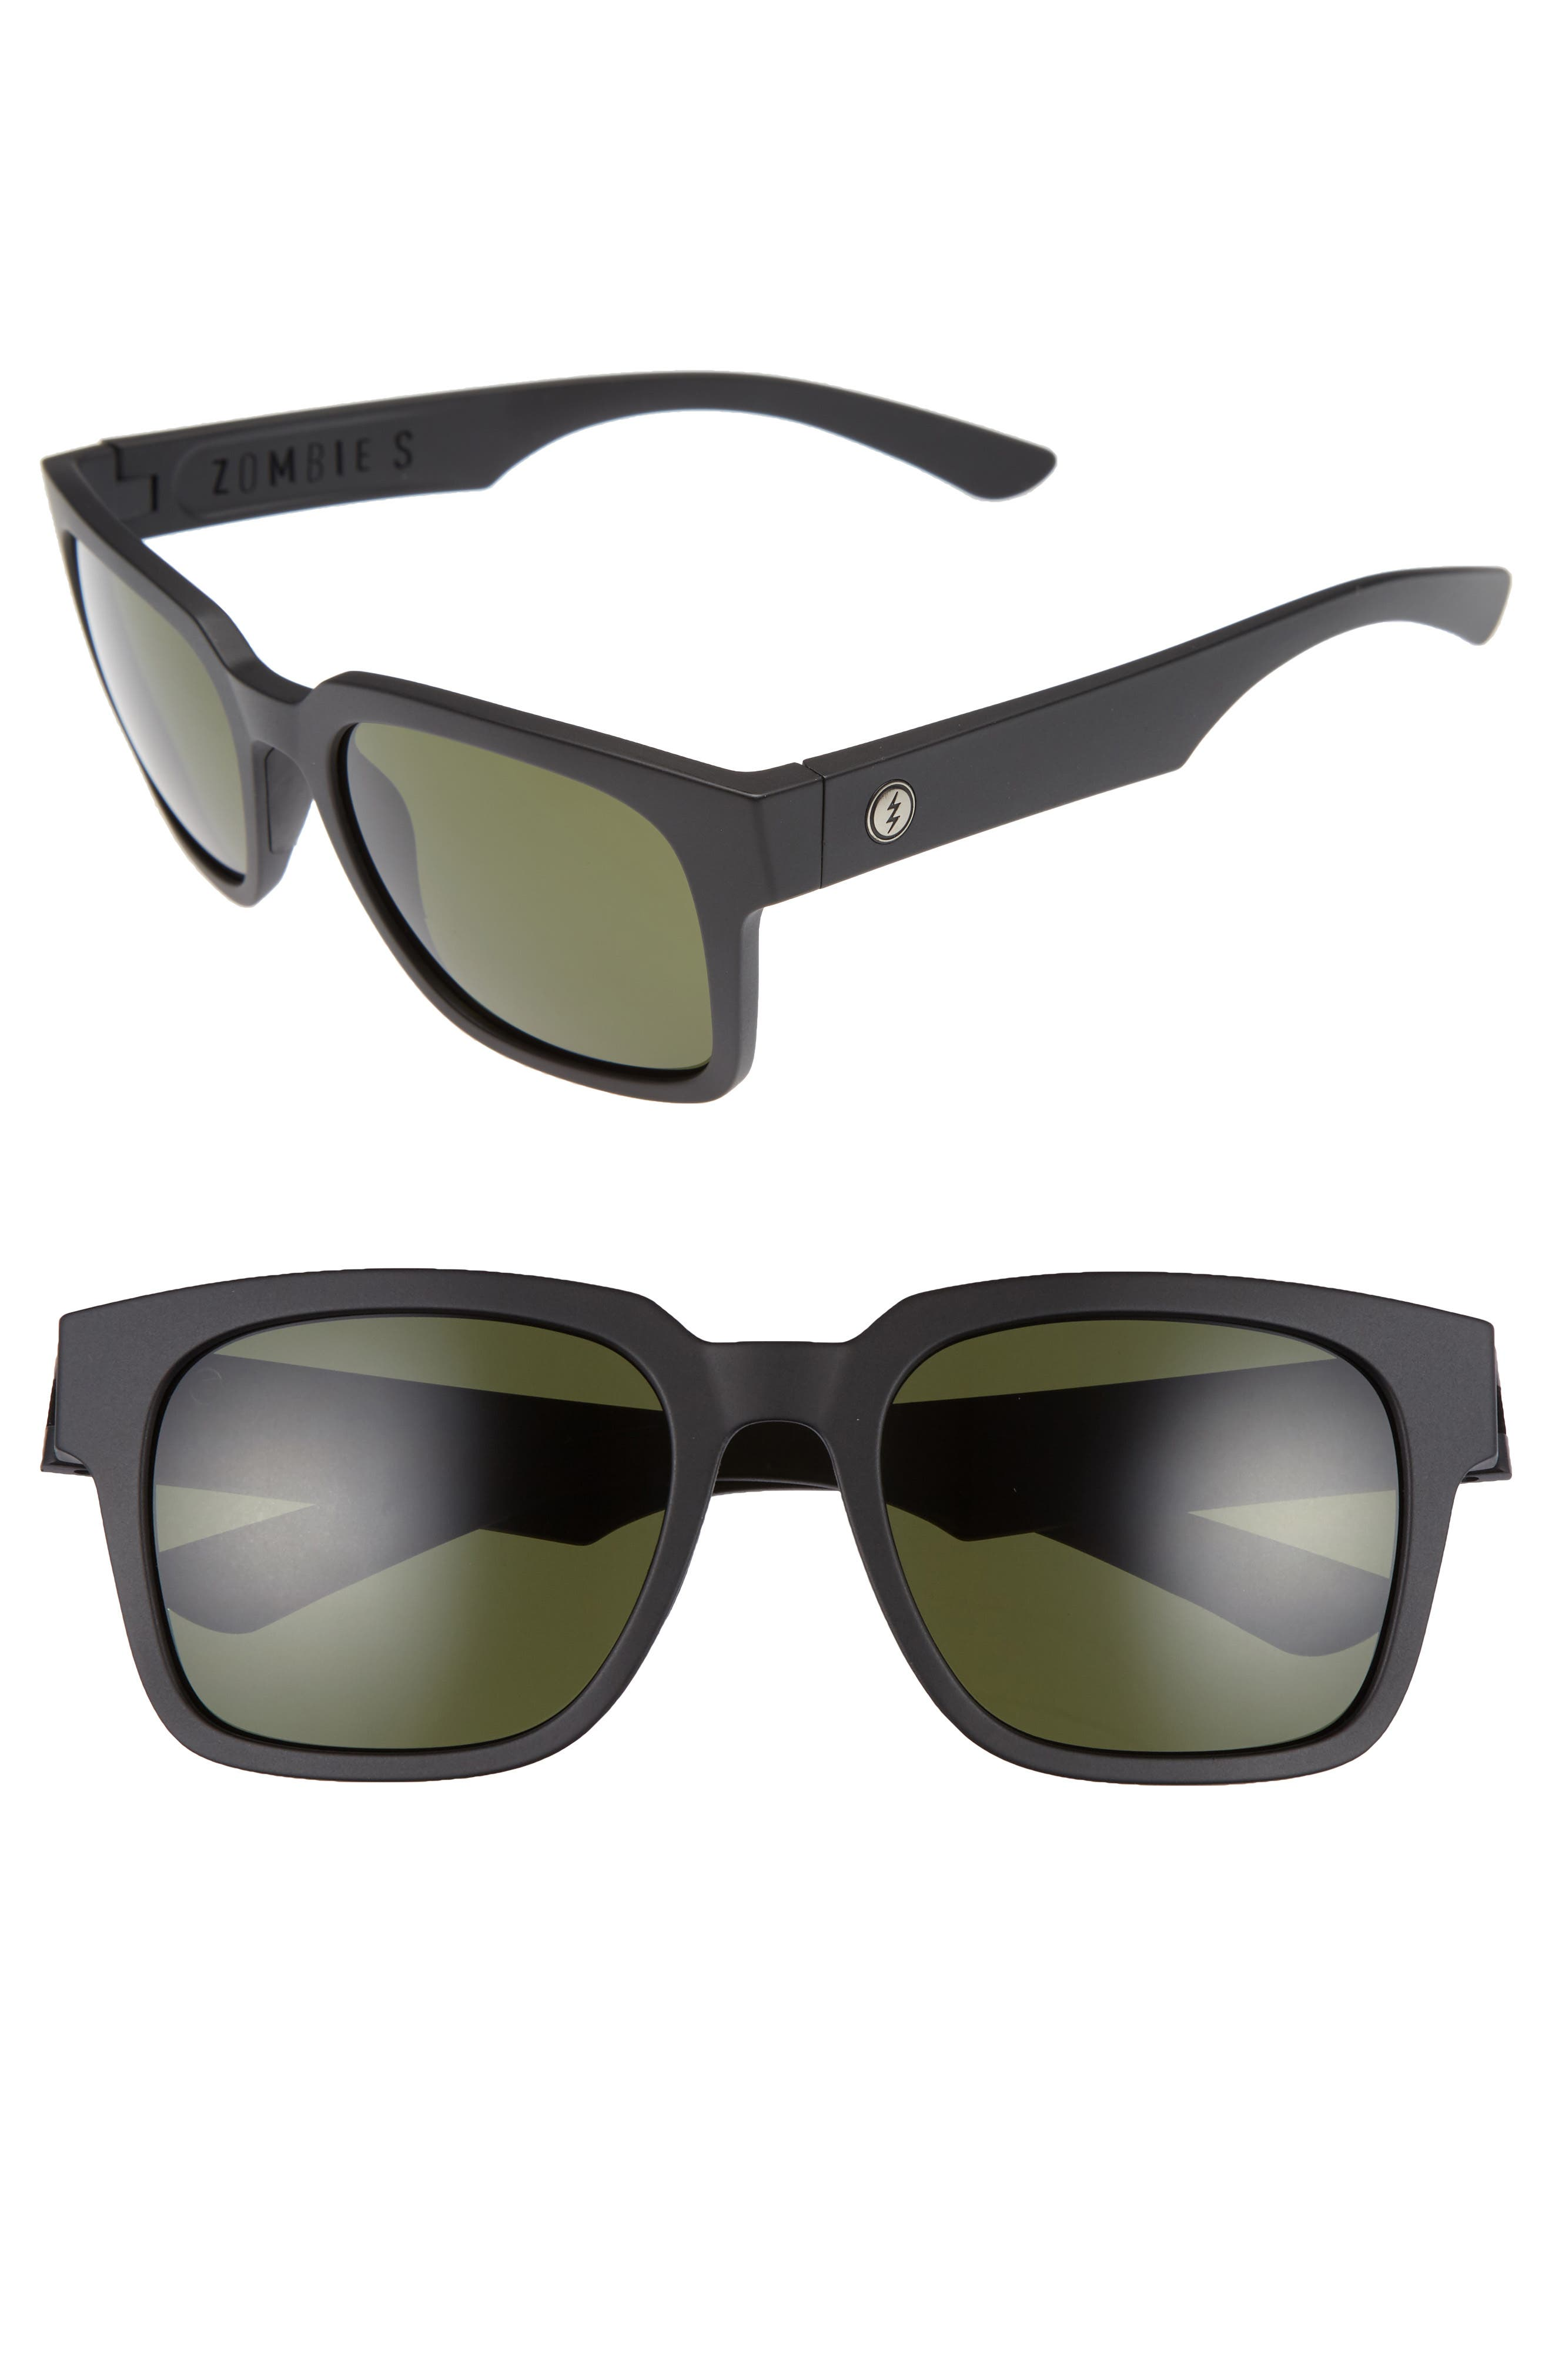 Main Image - ELECTRIC Zombie S 52mm Sunglasses